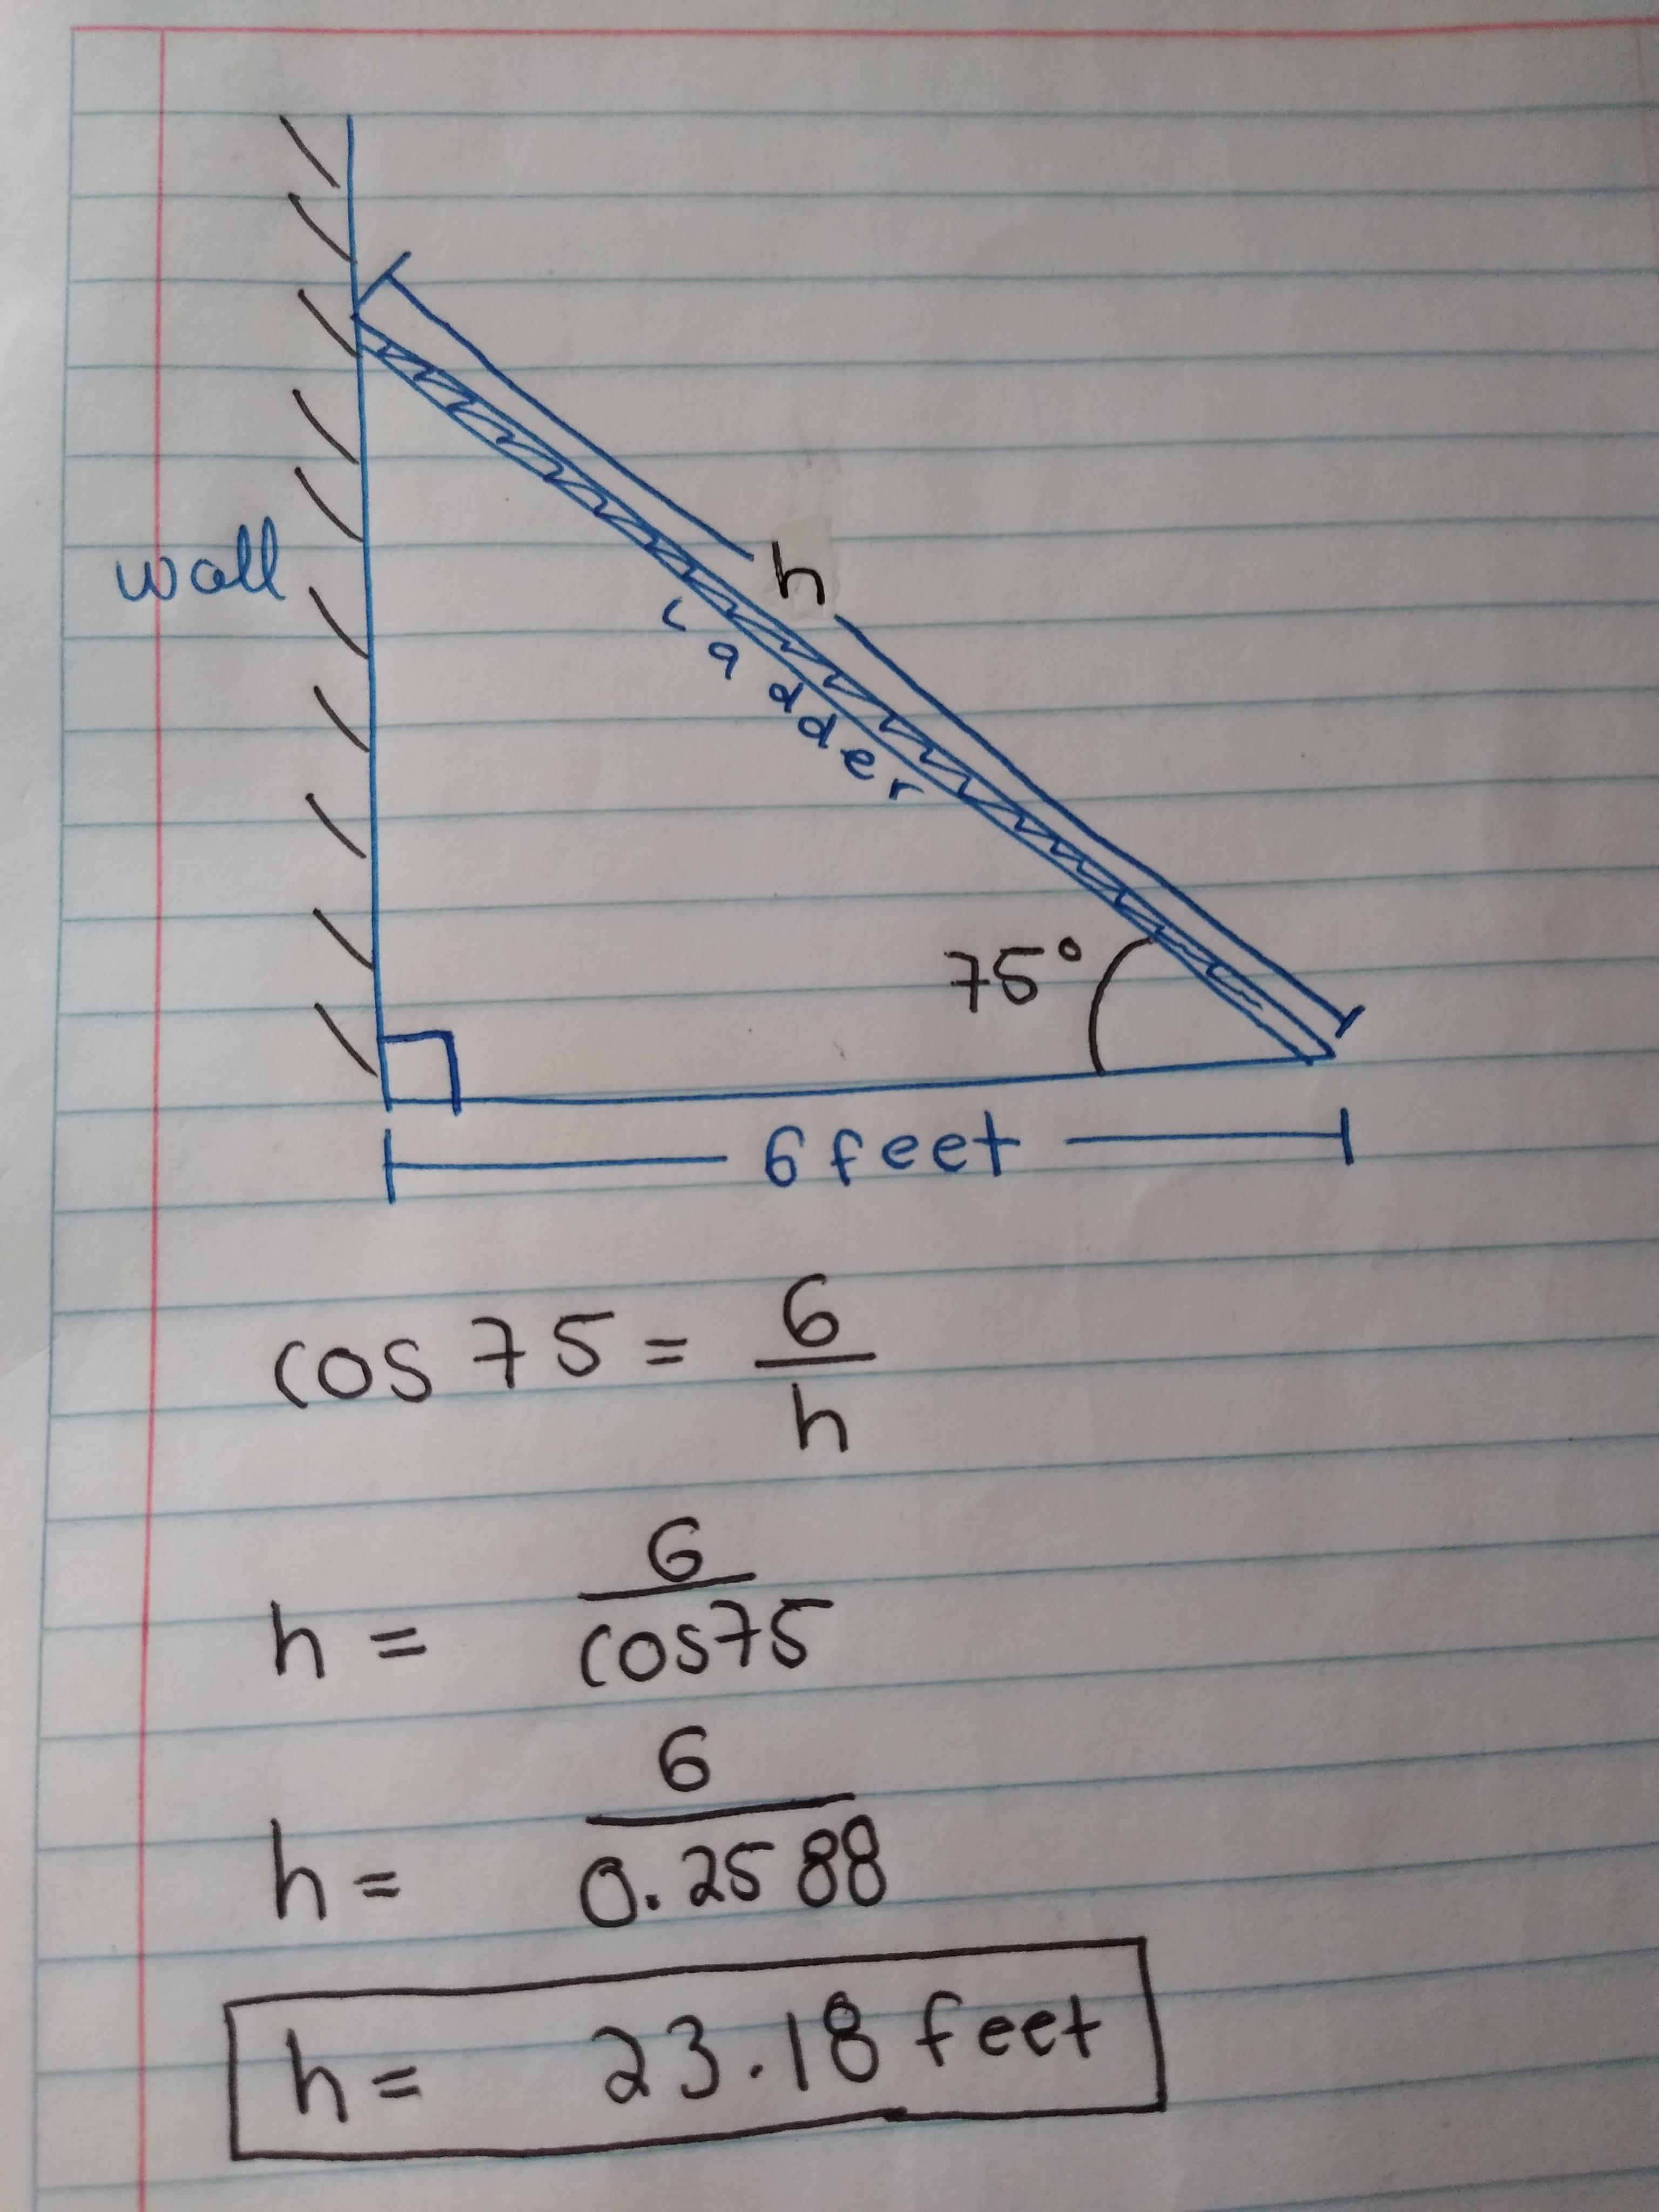 A Ladder Leaning Against A Wall Makes An Angle Of 75 With The Ground If The Foot Of The Ladder Is 6 Brainly Com